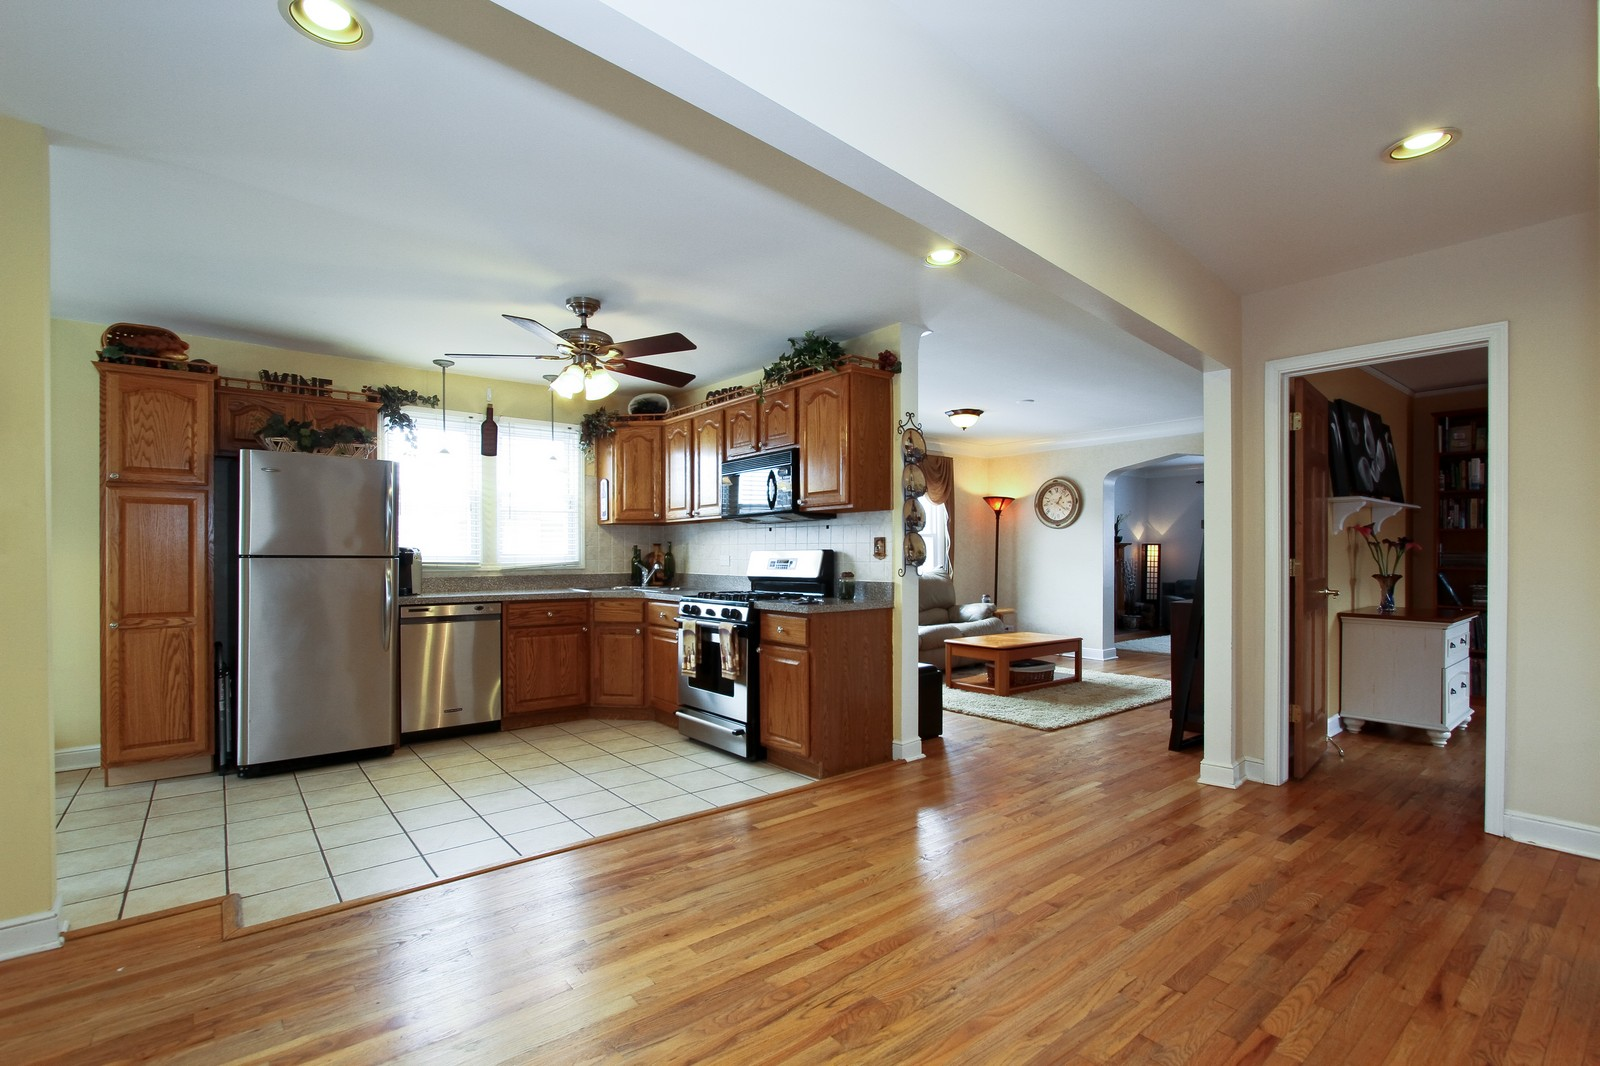 Real Estate Photography - 9209 S Claremont, Chicago, IL, 60643 - Kitchen